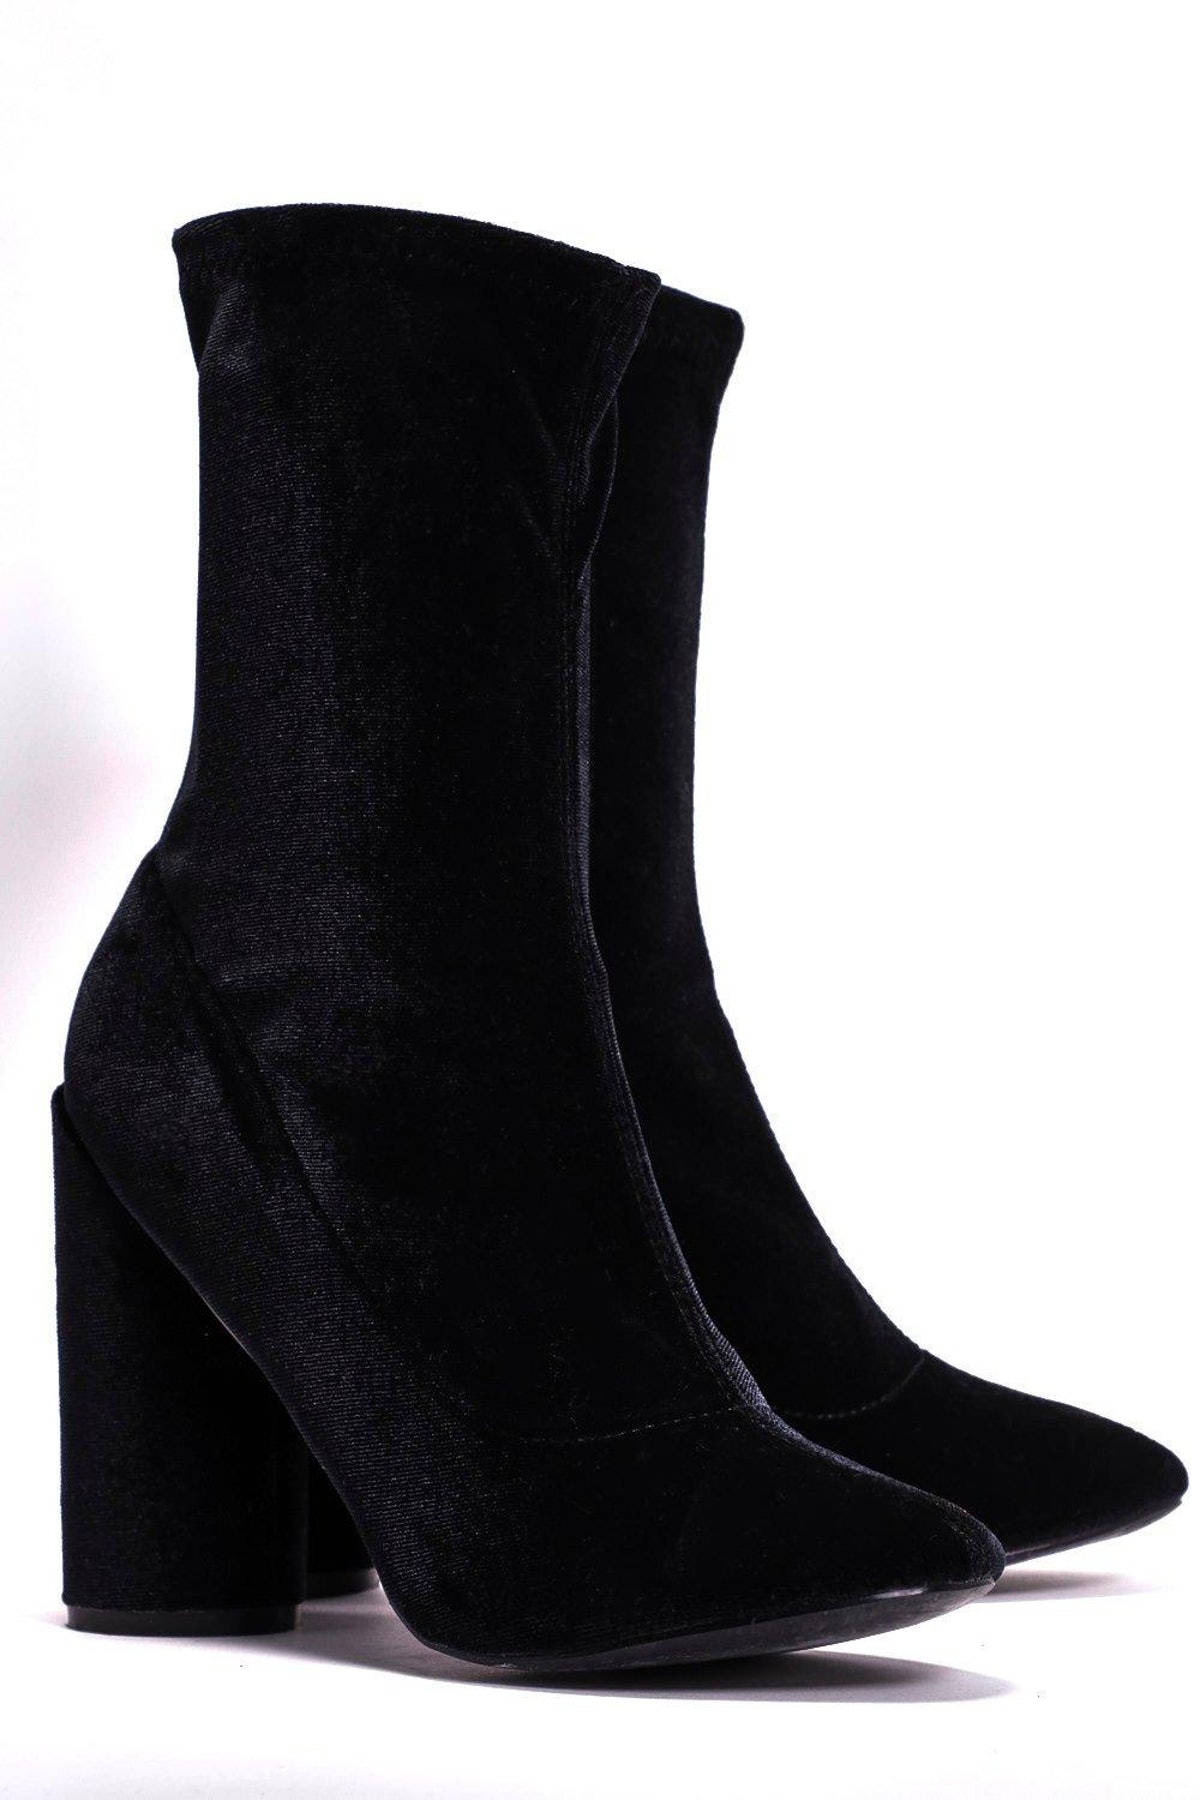 Out of Touch Velvet Boot